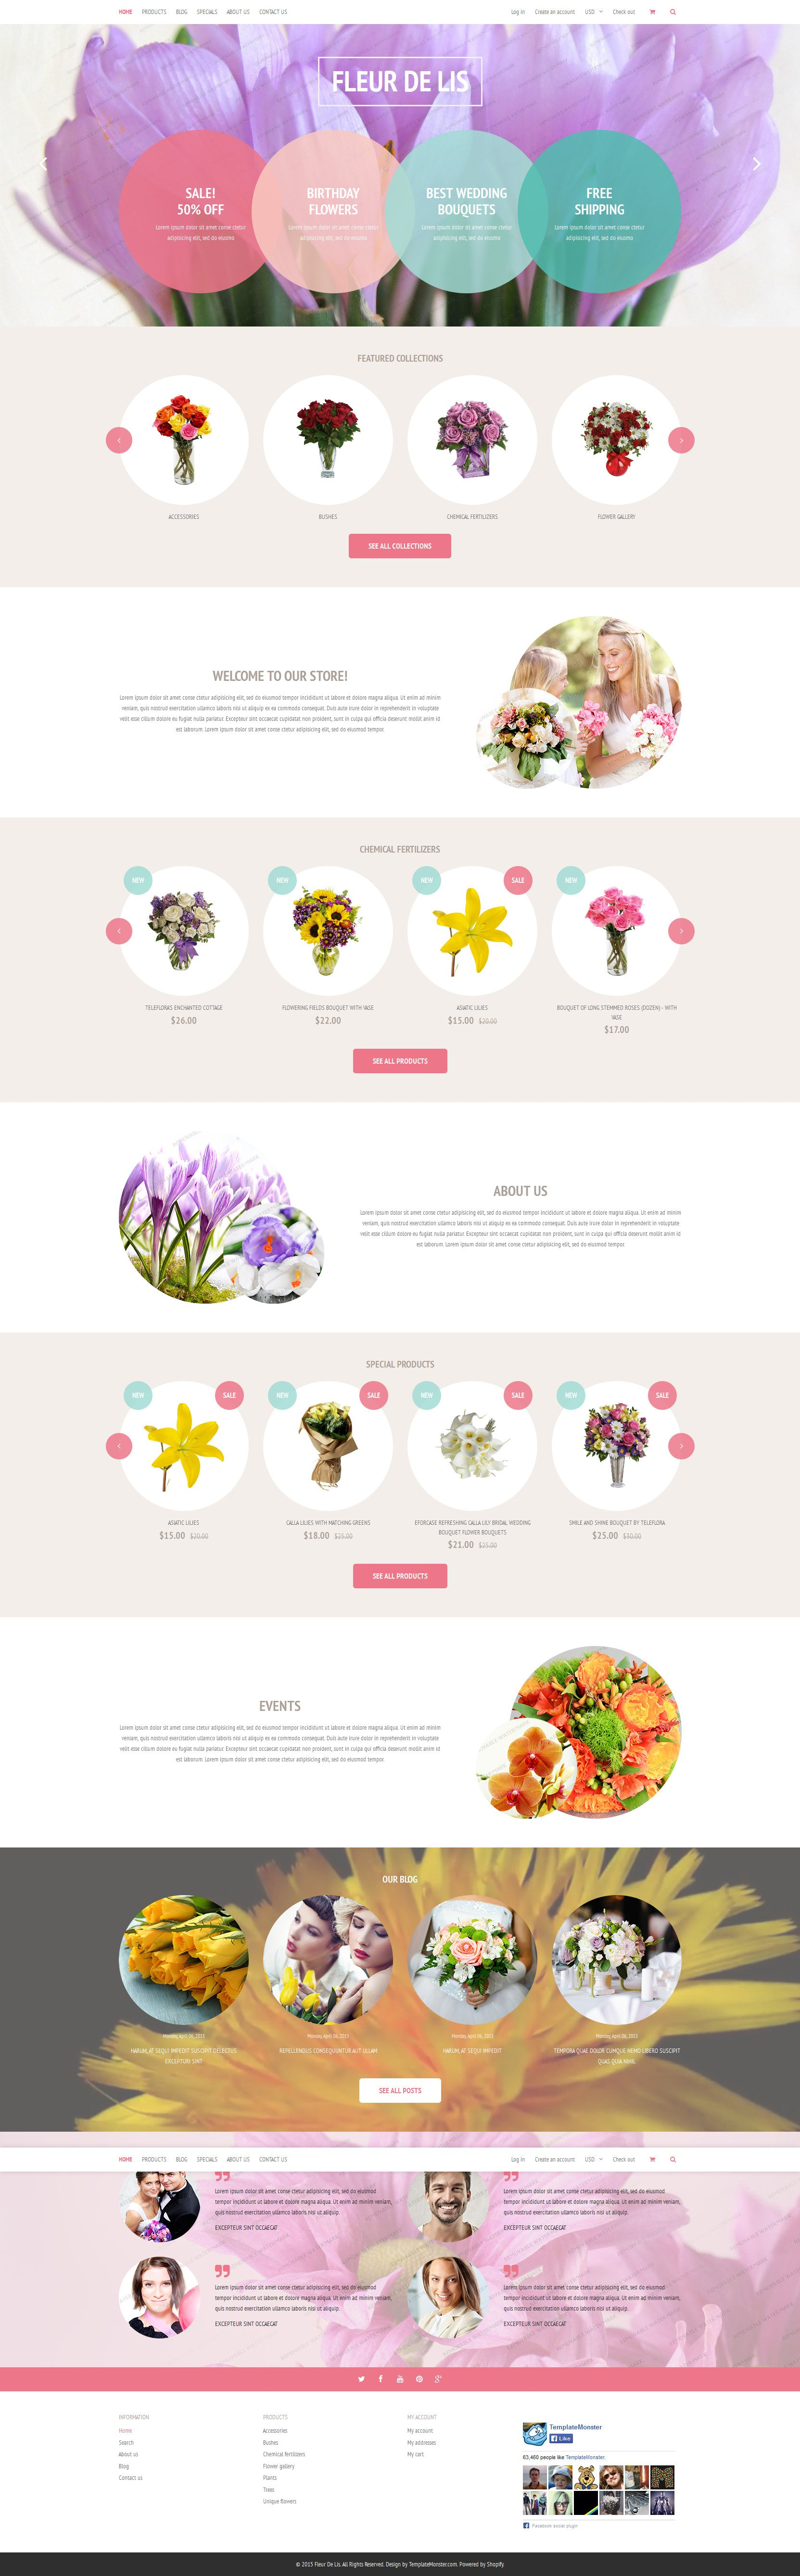 The Flower Online Store Shopify Design 53602, one of the best Shopify themes of its kind (holiday), also known as flower online store Shopify template, flowers Shopify template, gifts Shopify template, birthday Shopify template, wedding Shopify template, engagement Shopify template, occasions Shopify template, specials Shopify template, exclusive Shopify template, roses Shopify template, lilies Shopify template, orchid Shopify template, chrysanthemum Shopify template, tulip Shopify template, order Shopify template, services Shopify template, order Shopify template, packing Shopify template, present Shopify template, cards Shopify template, holiday Shopify template, celebration Shopify template, catalog Shopify template, delivery Shopify template, chamomile Shopify template, daisy Shopify template, rose Shopify template, bouquet Shopify template, wrapping and related with flower online store, flowers, gifts, birthday, wedding, engagement, occasions, specials, exclusive, roses, lilies, orchid, chrysanthemum, tulip, order, services, order, packing, present, cards, holiday, celebration, catalog, delivery, chamomile, daisy, rose, bouquet, wrapping, etc.